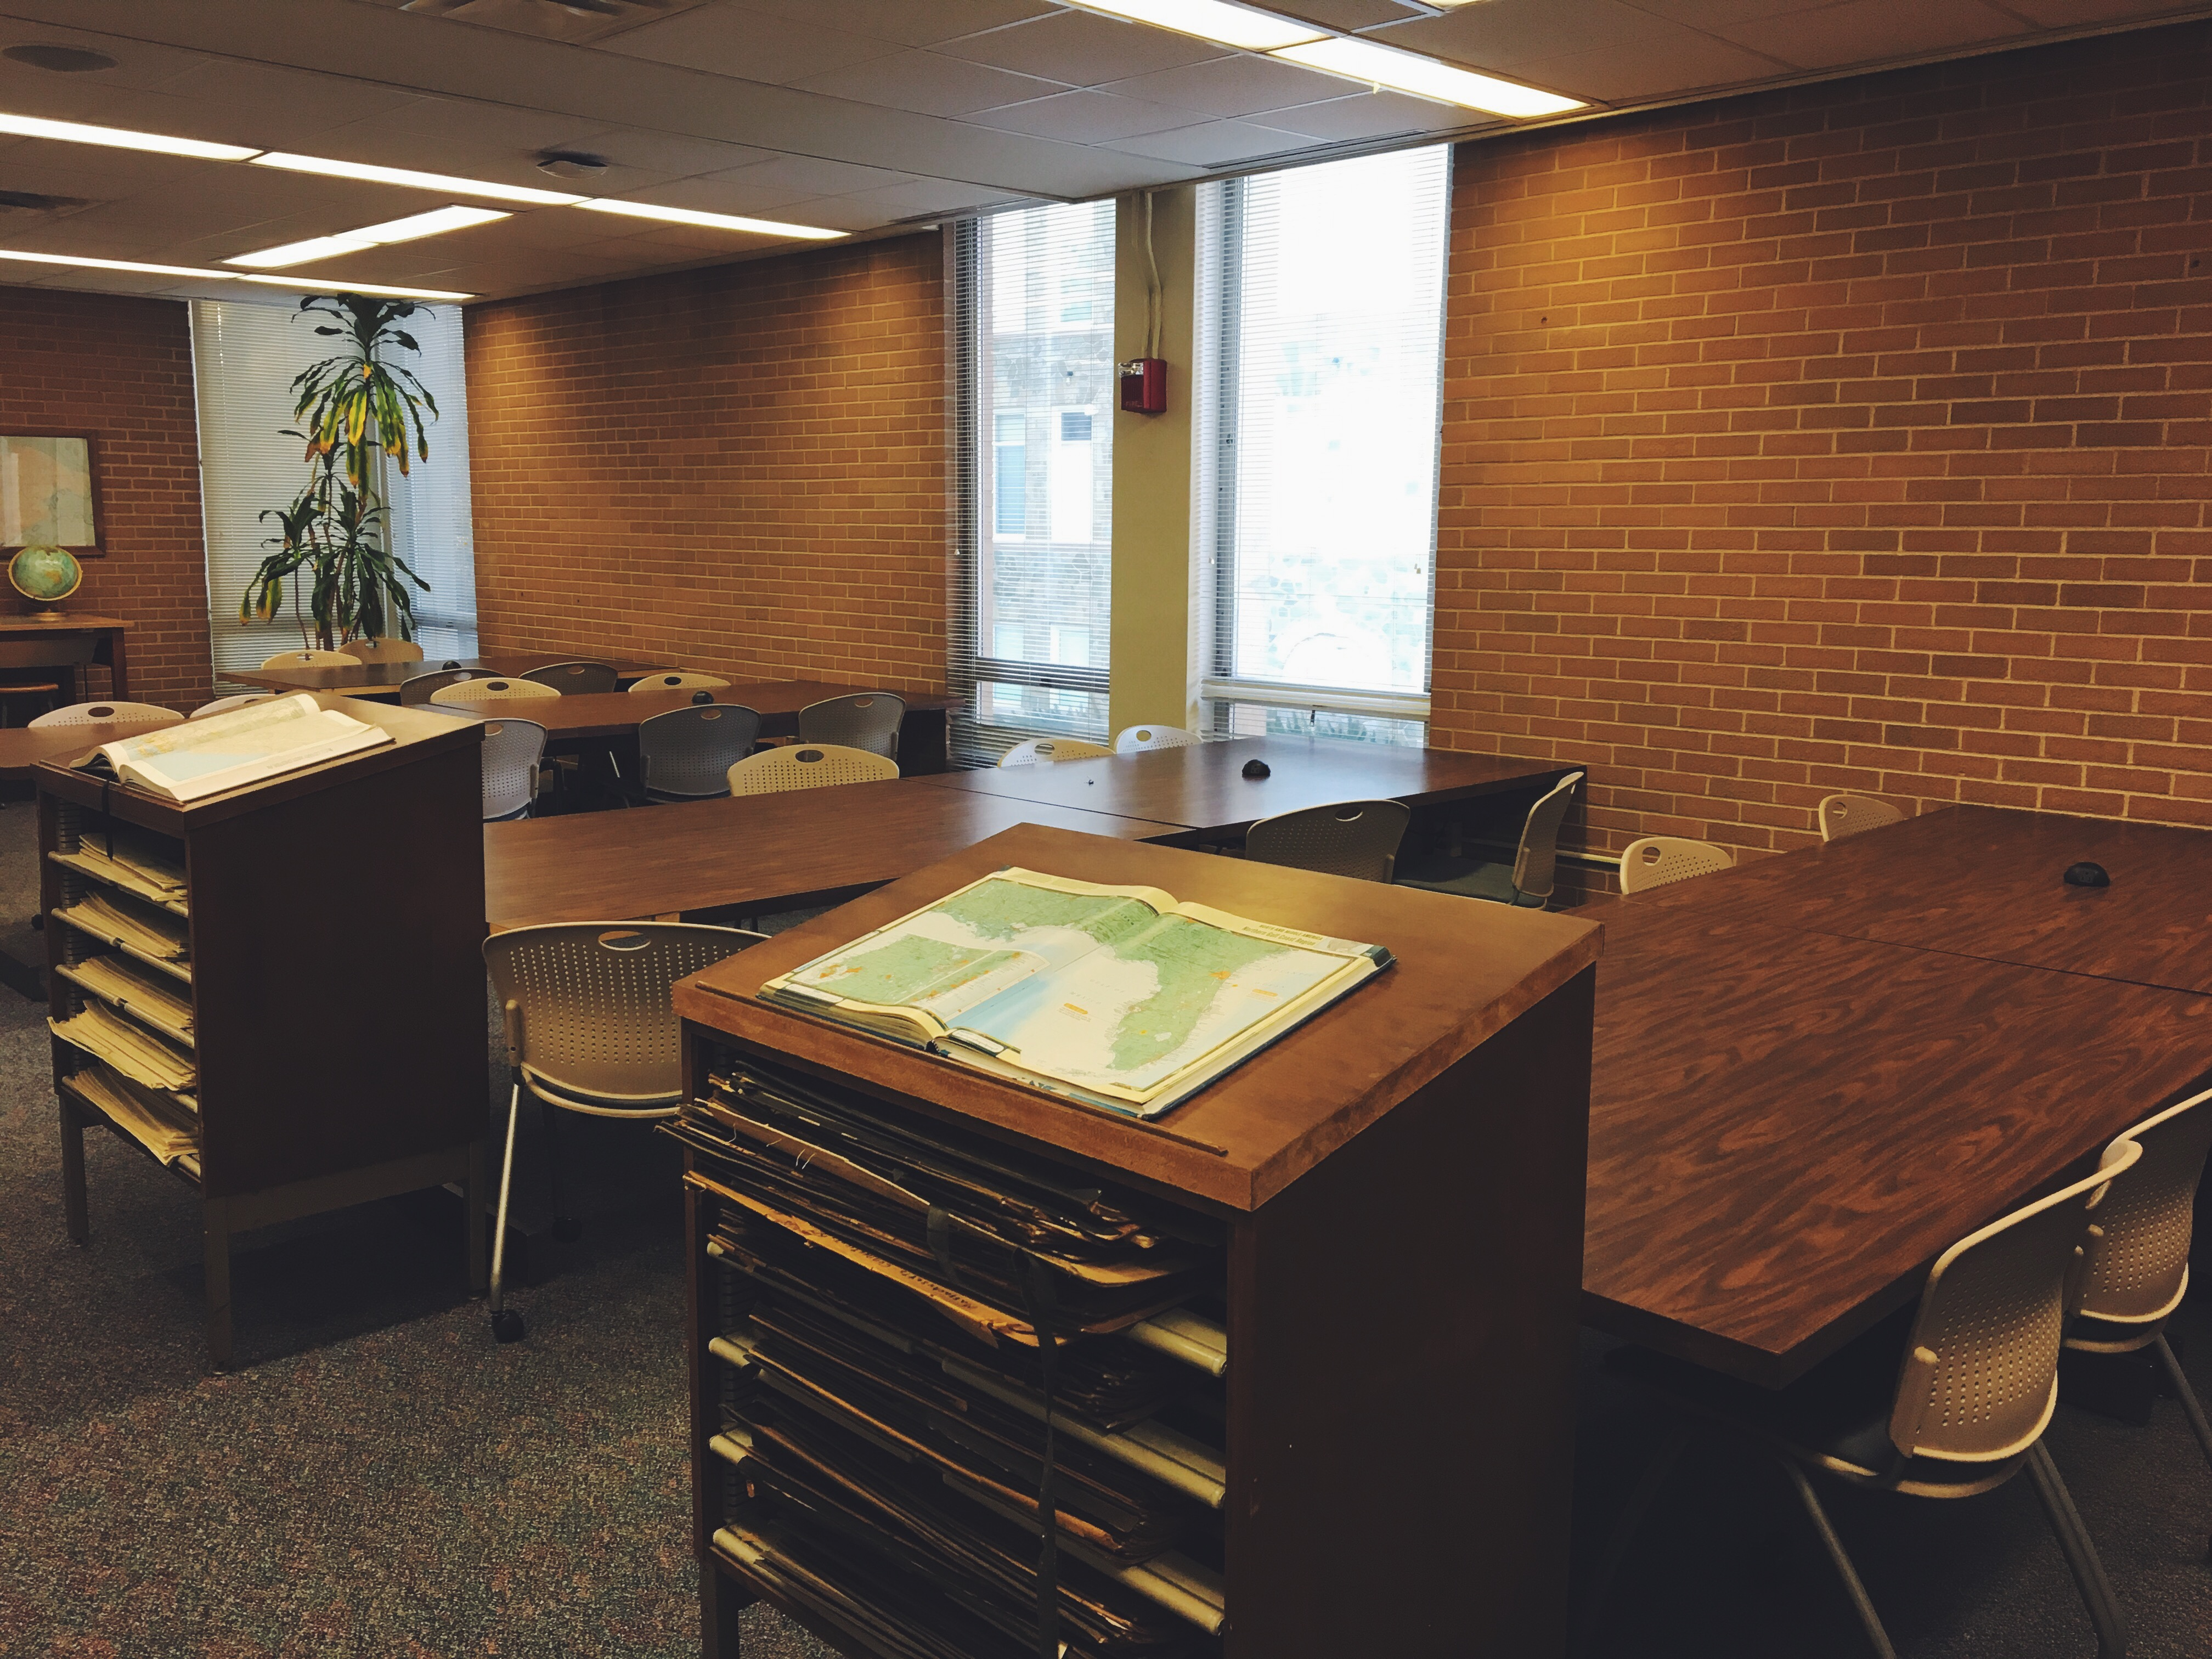 West Chester study spots: the Maps room located on the second floor of Francis Harvey Green Library